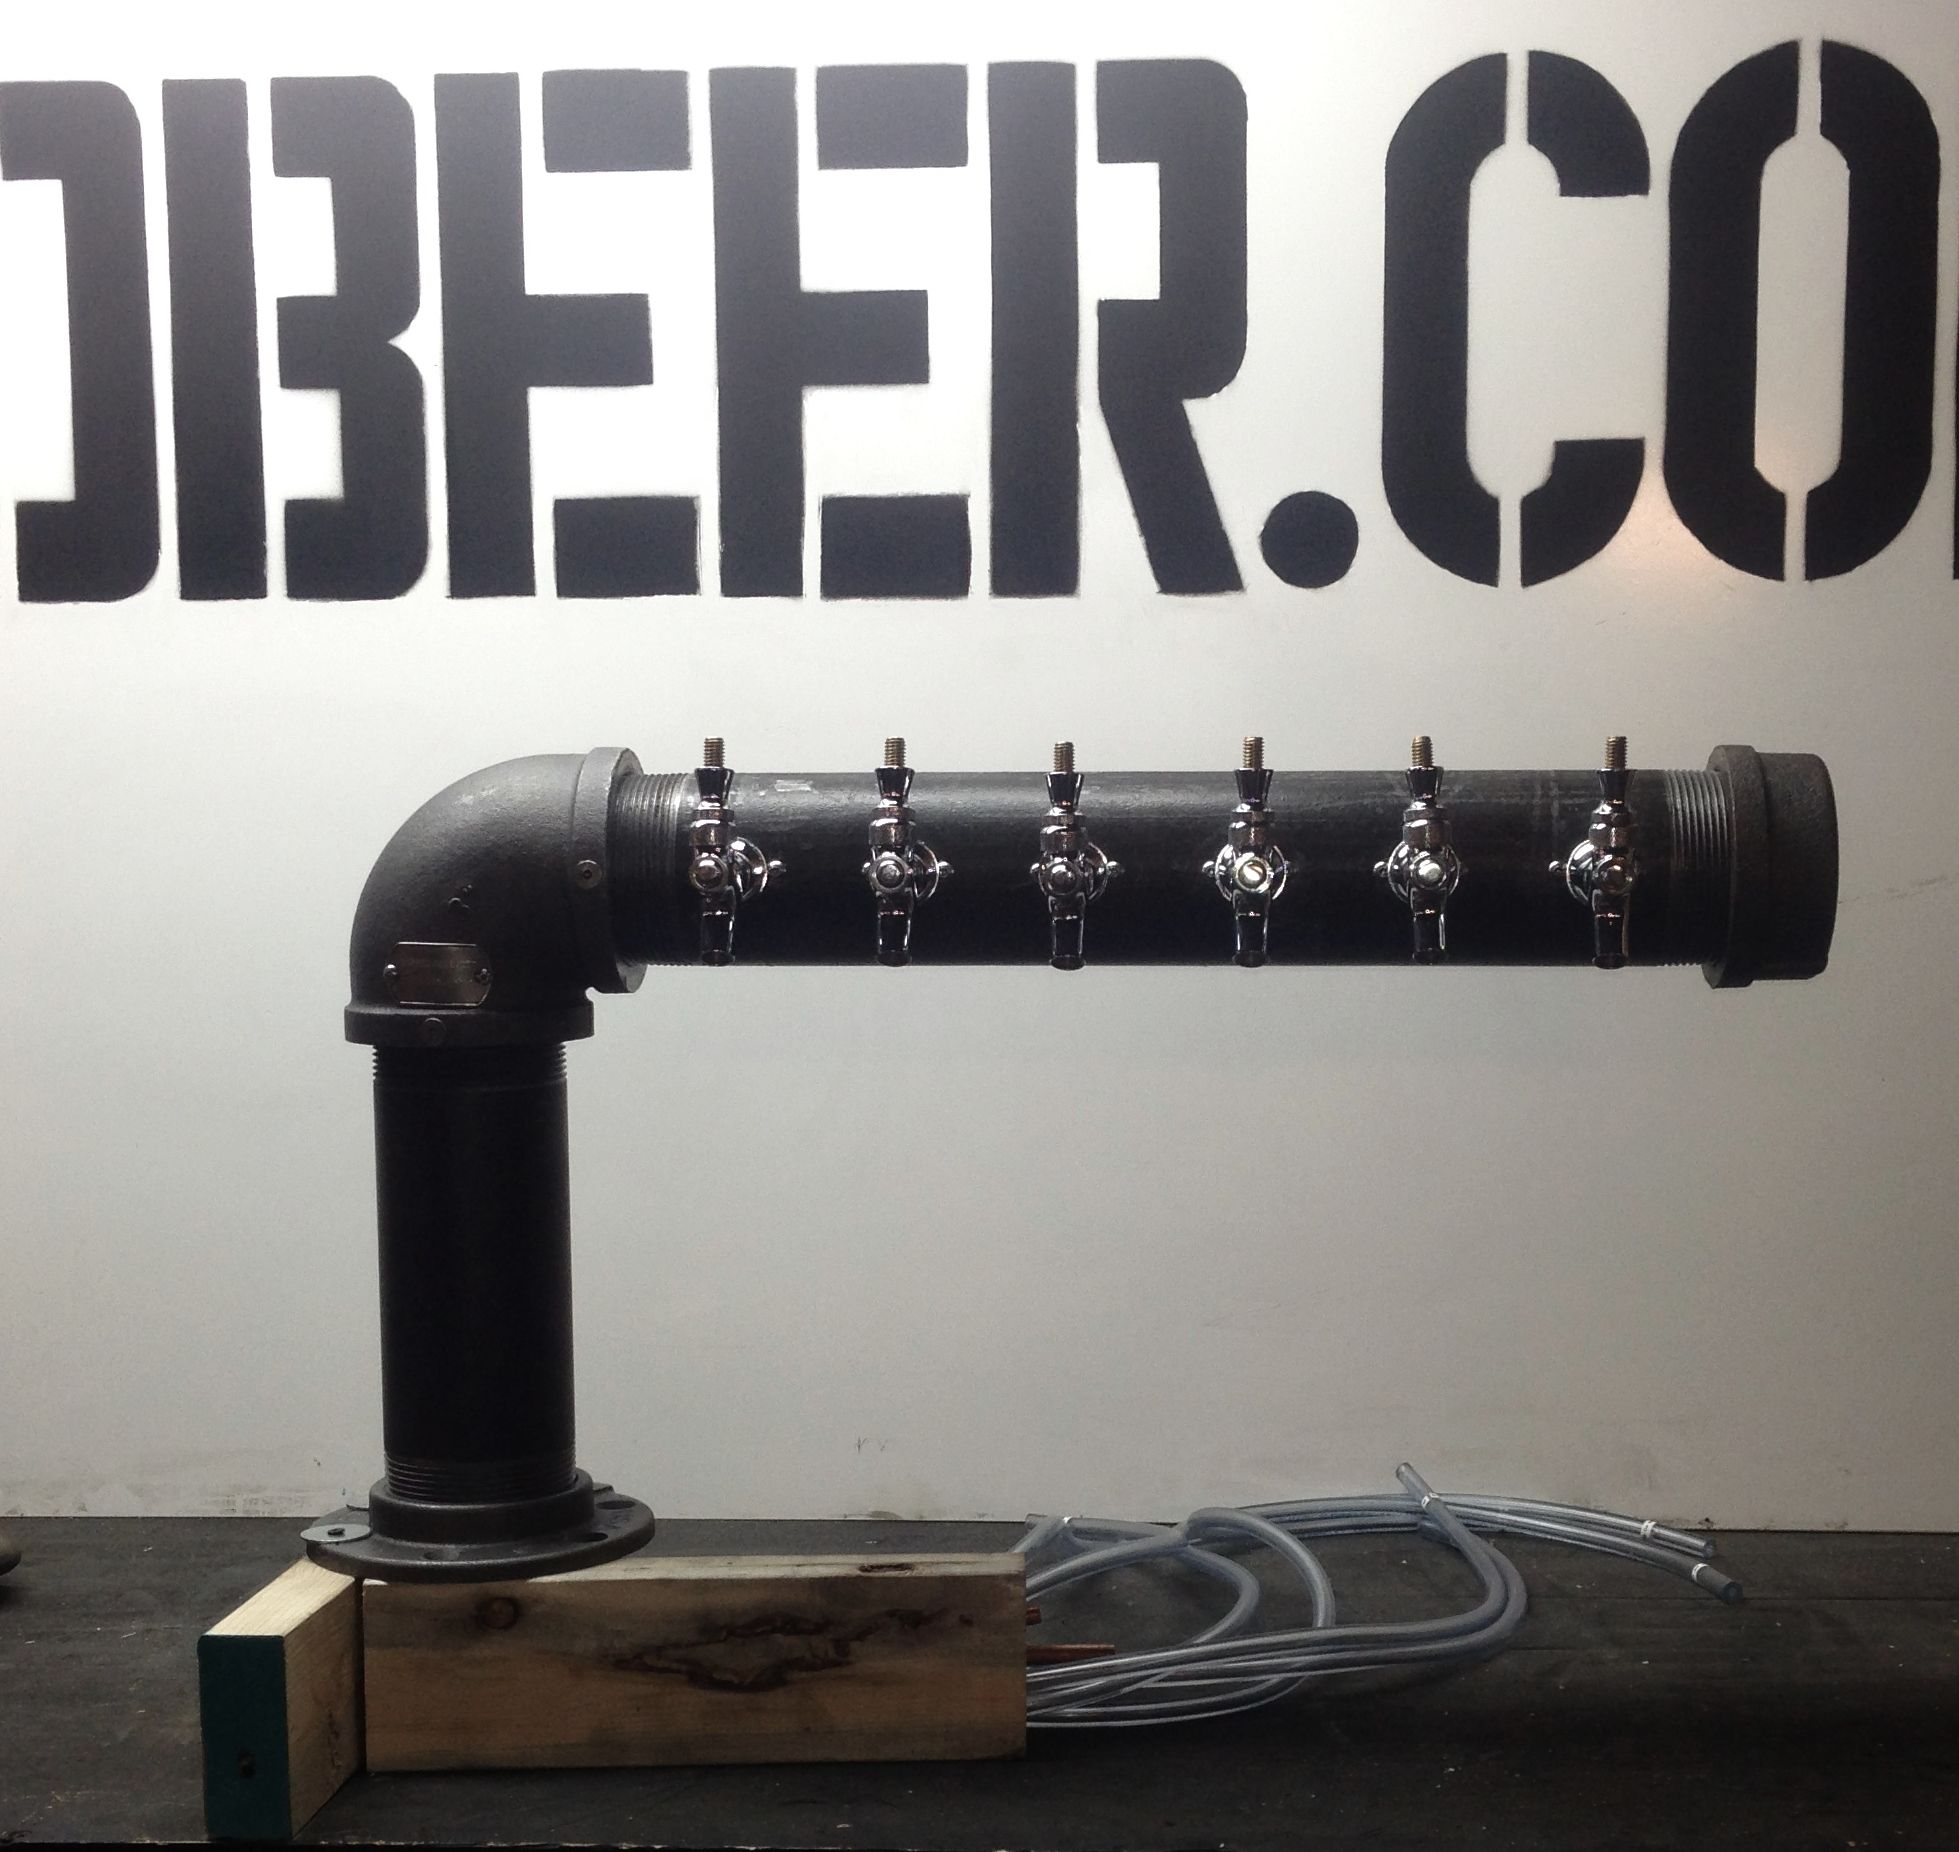 Black Iron L Shaped Beer Tower Www Tappedbeer Com Beer Tower